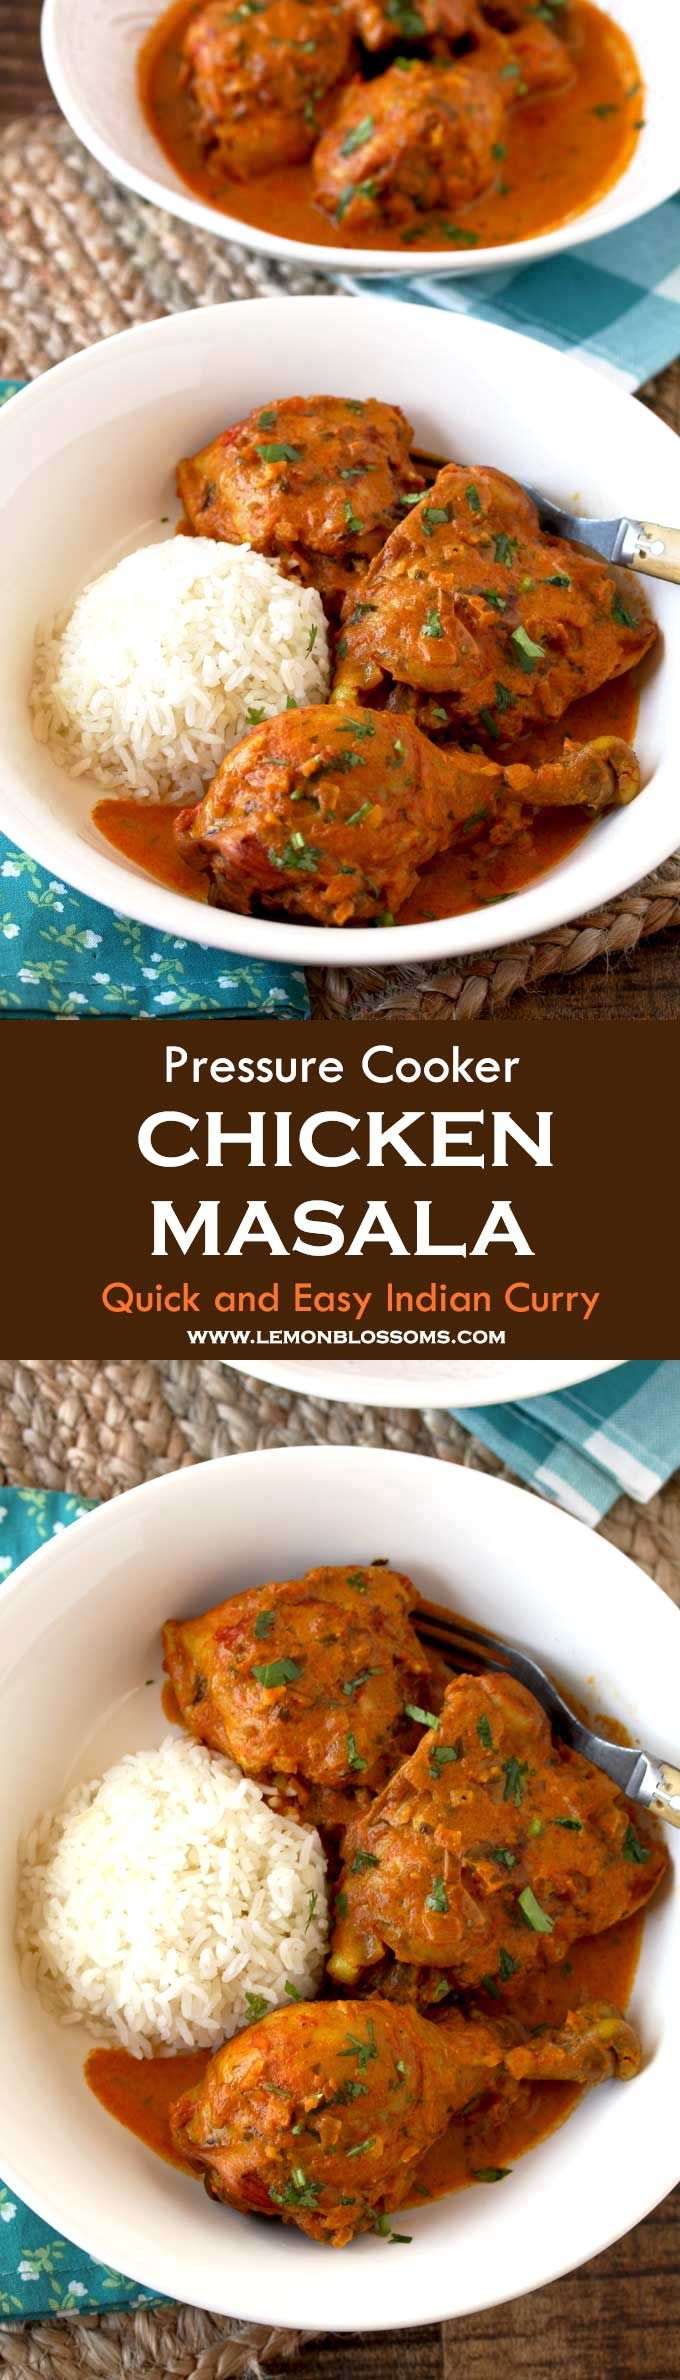 This Indian inspired Chicken Masala has the right balance of spices and creaminess and only takes 30 minutes to make! Chicken pieces are cooked in a flavorful tomato based sauce with spices you already have in your kitchen. This easy full flavored homemade curry recipe is one everyone will love! #Instantpot #chicken #Masala #Curry #IndianFood via @lmnblossoms